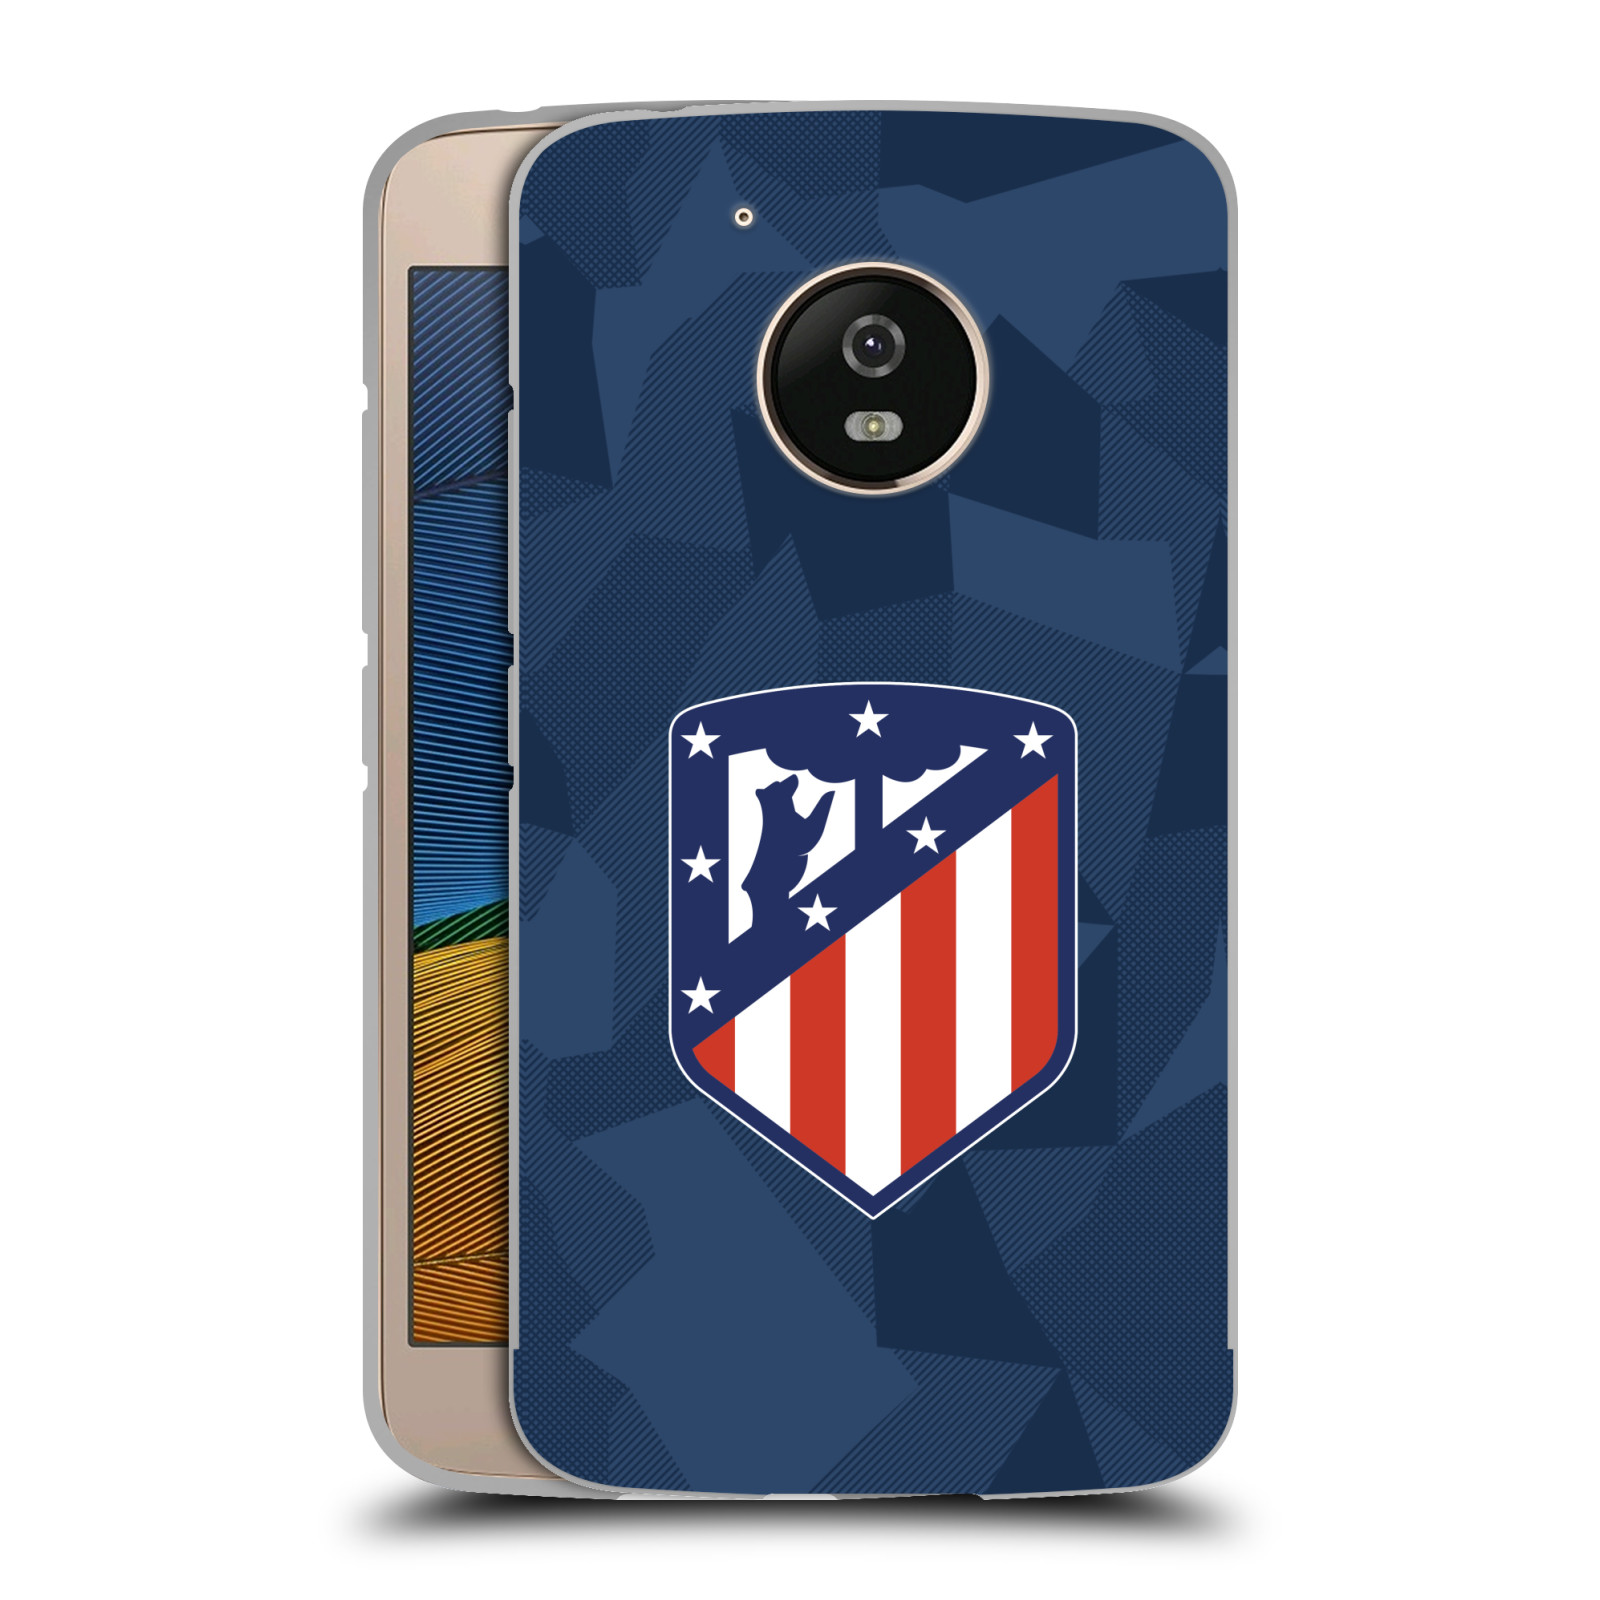 ATLETICO-MADRID-2017-18-CREST-KIT-BLACK-METALLIC-ALUMINIUM-FOR-MOTOROLA-PHONES